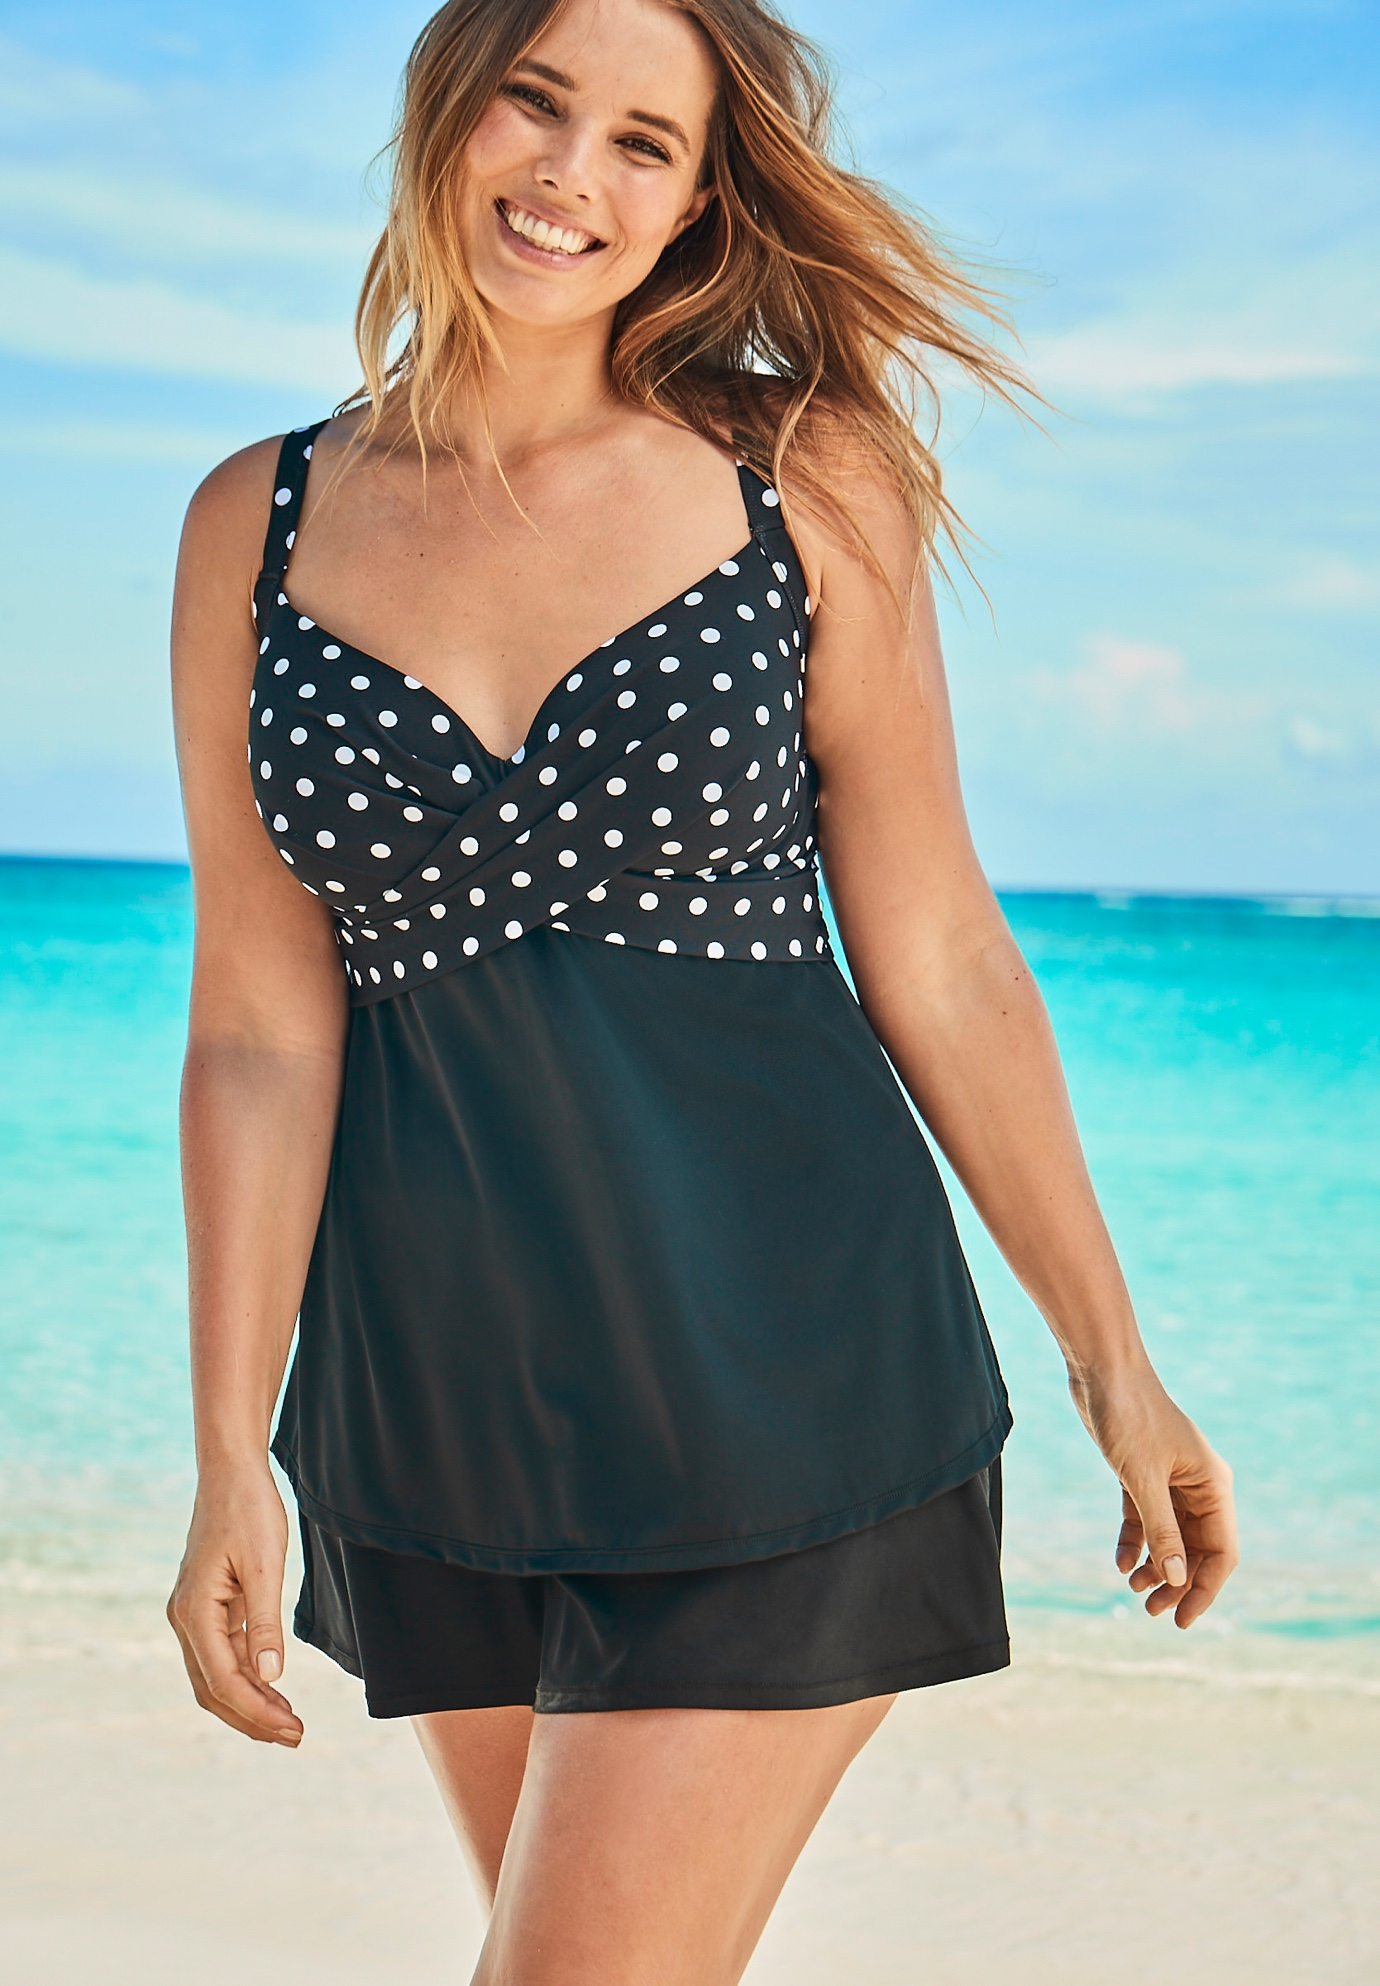 Bra-Sized Cross-Front Tankini Top,